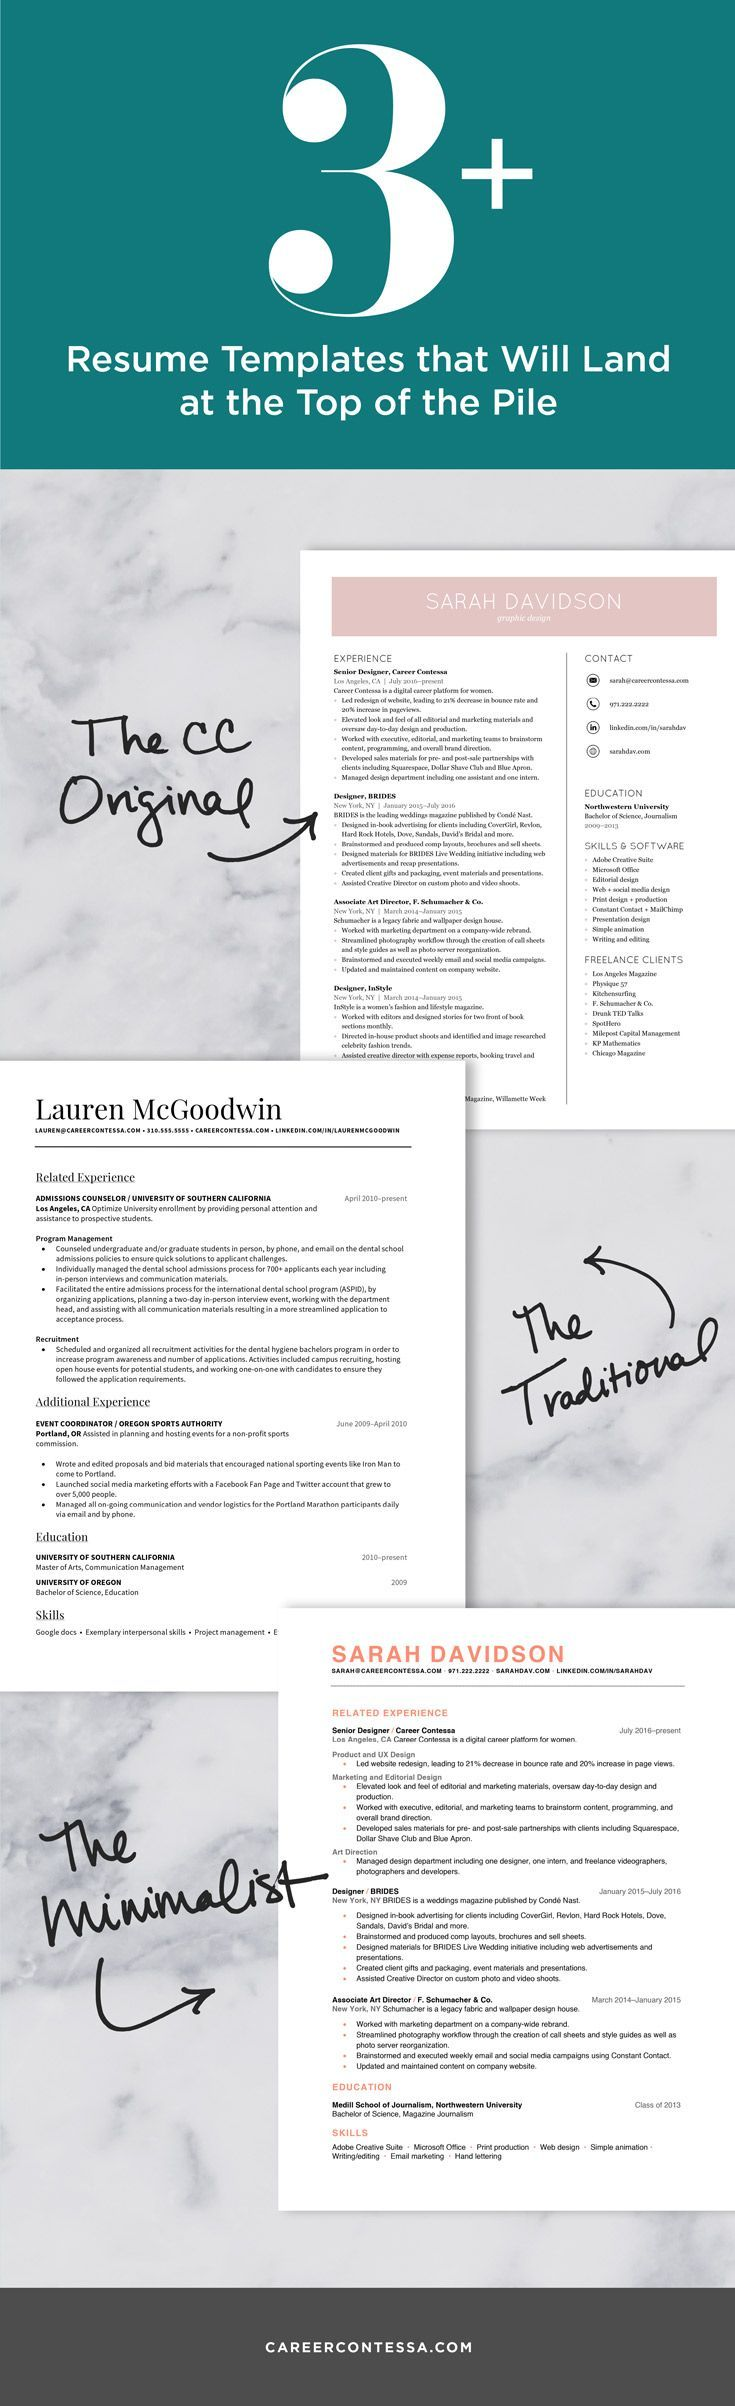 6 Super Useful Tips for Writing a Resume Resume, Resume